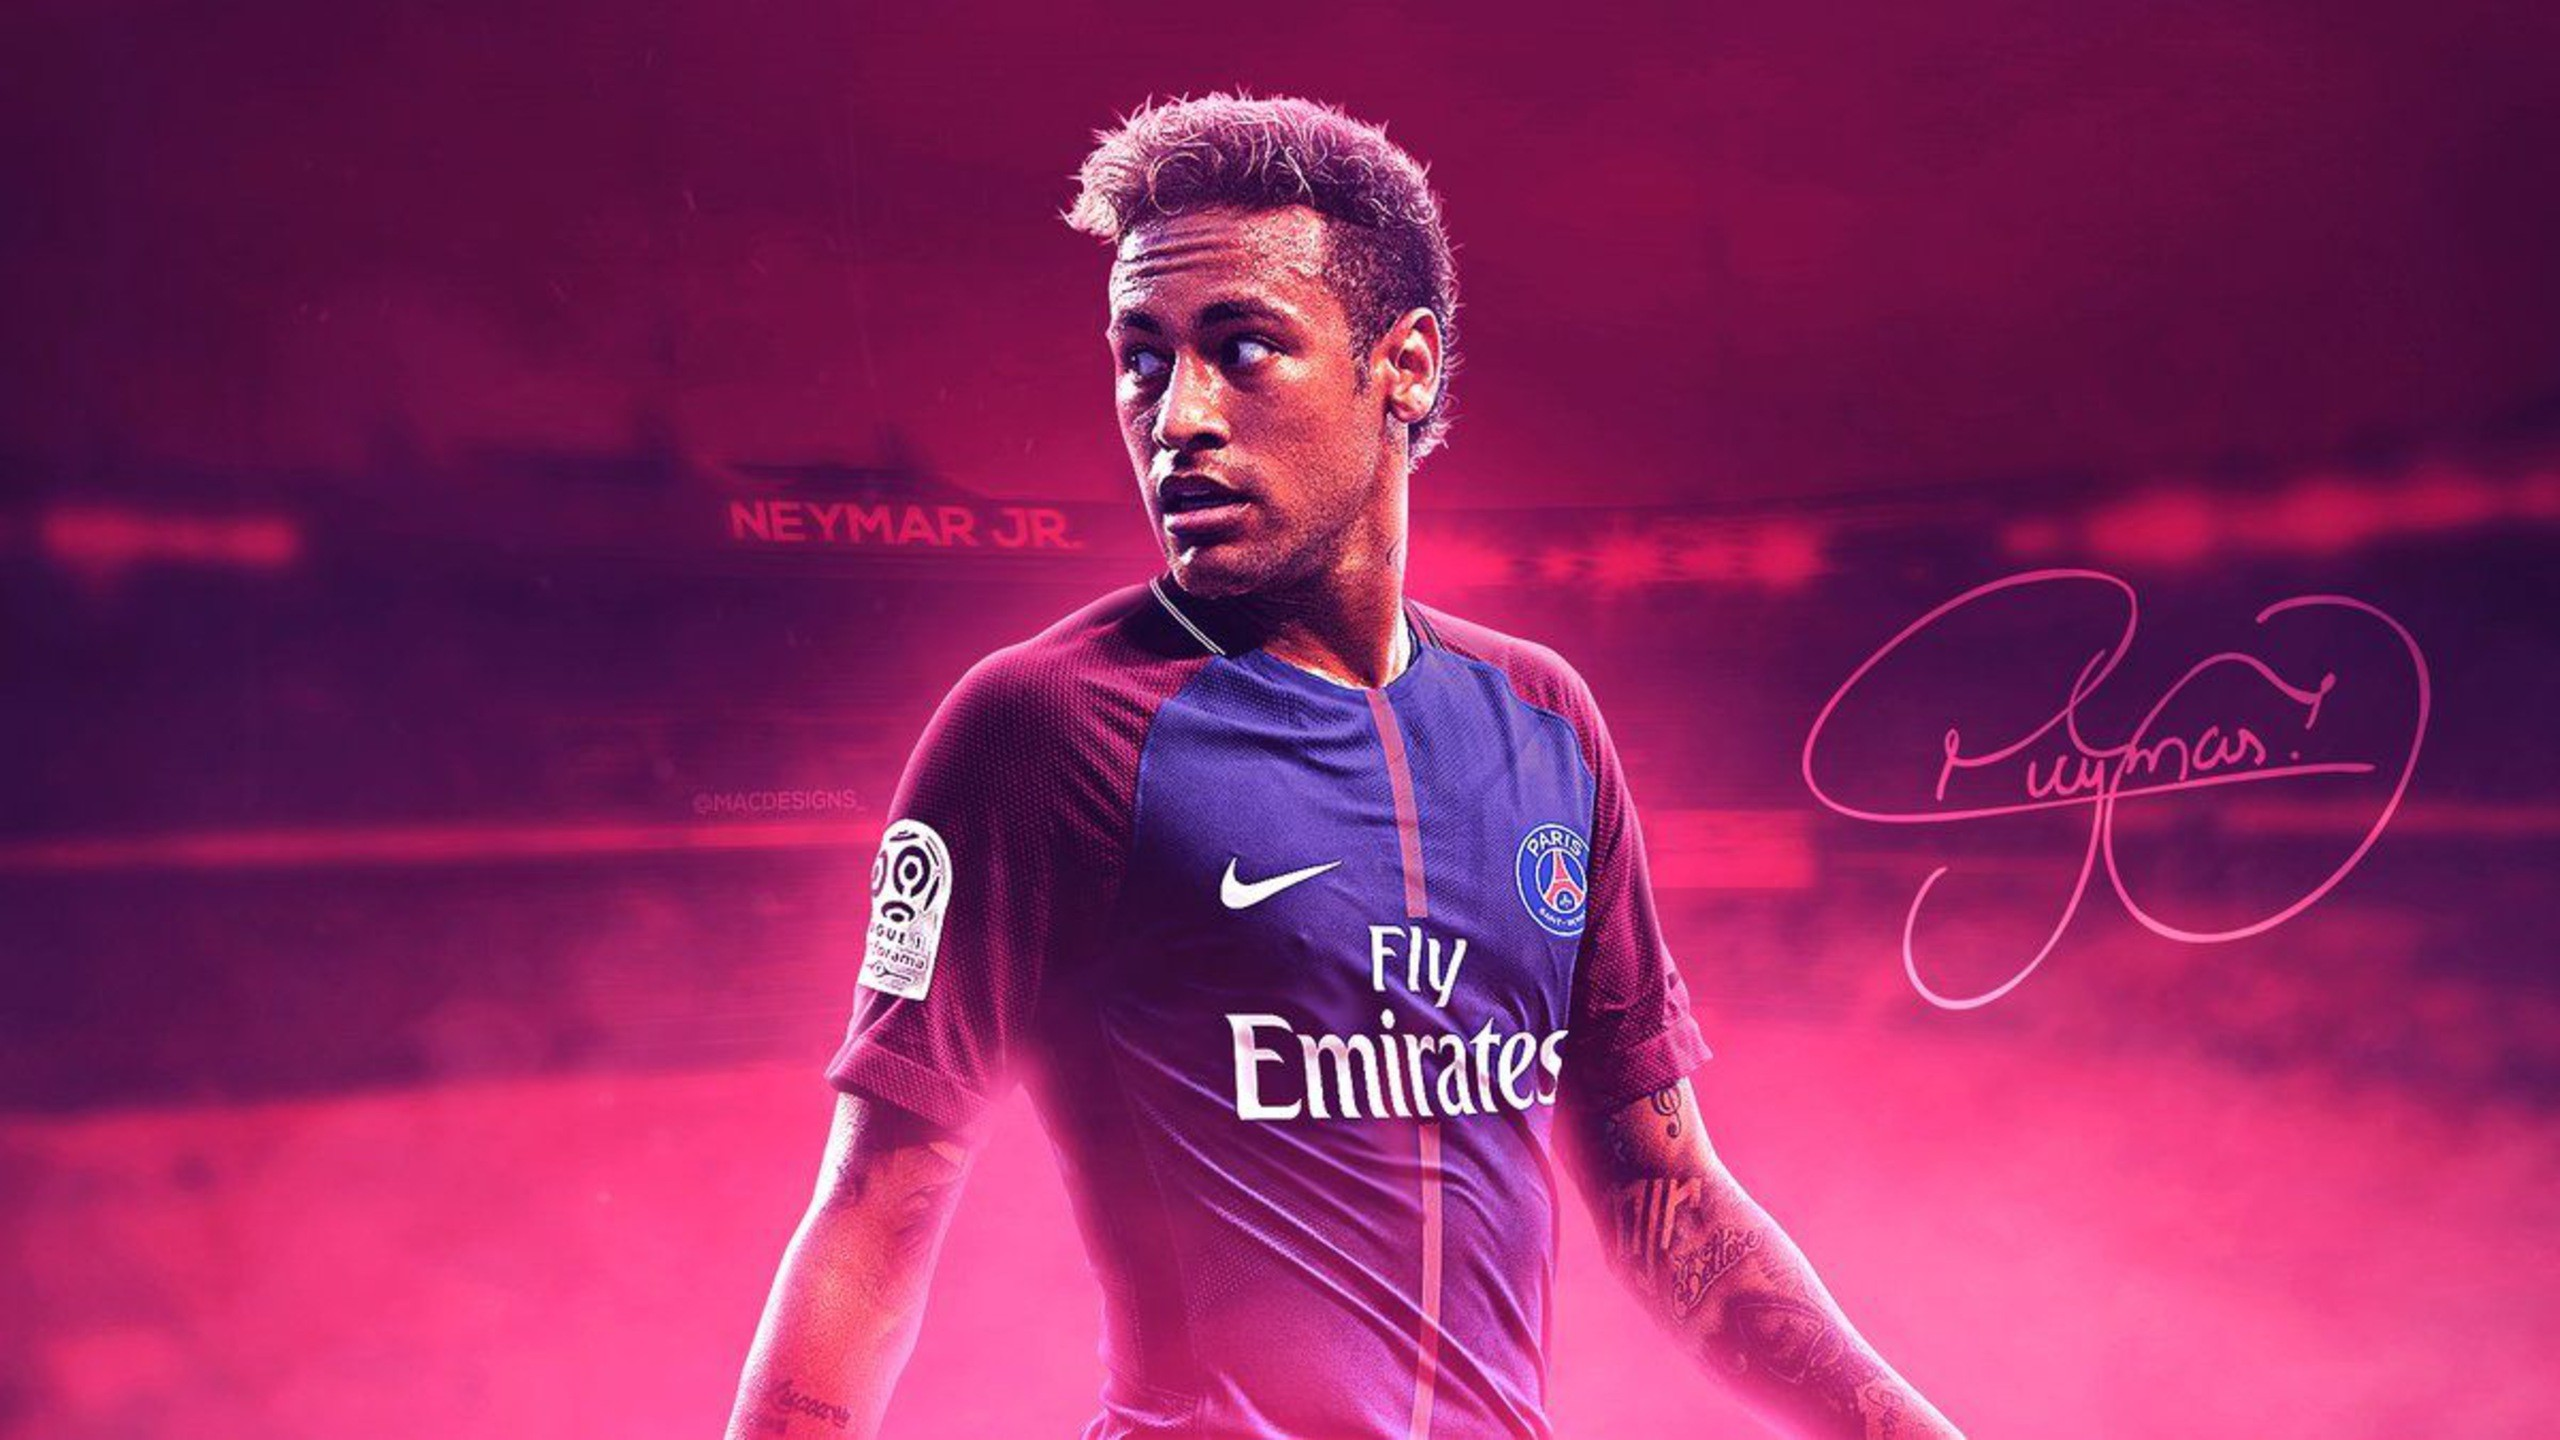 Neymar 2018 Wallpapers 77 Background Pictures